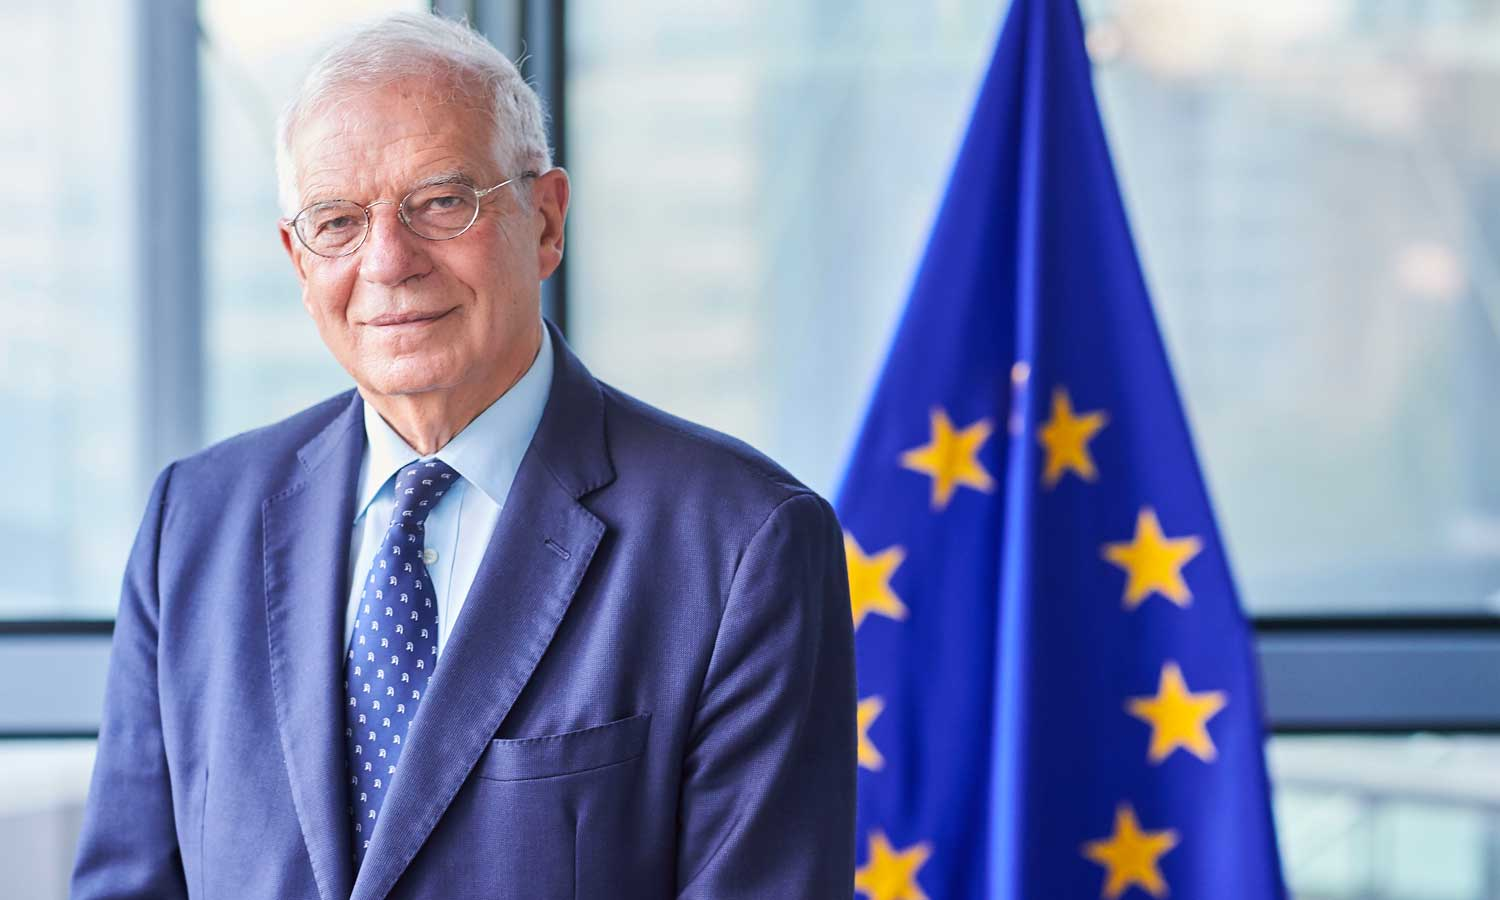 European Union High Representative for Foreign Affairs and Security Policy and the Vice-President of the Commission, Josep Borrell (ec.europa.eu)